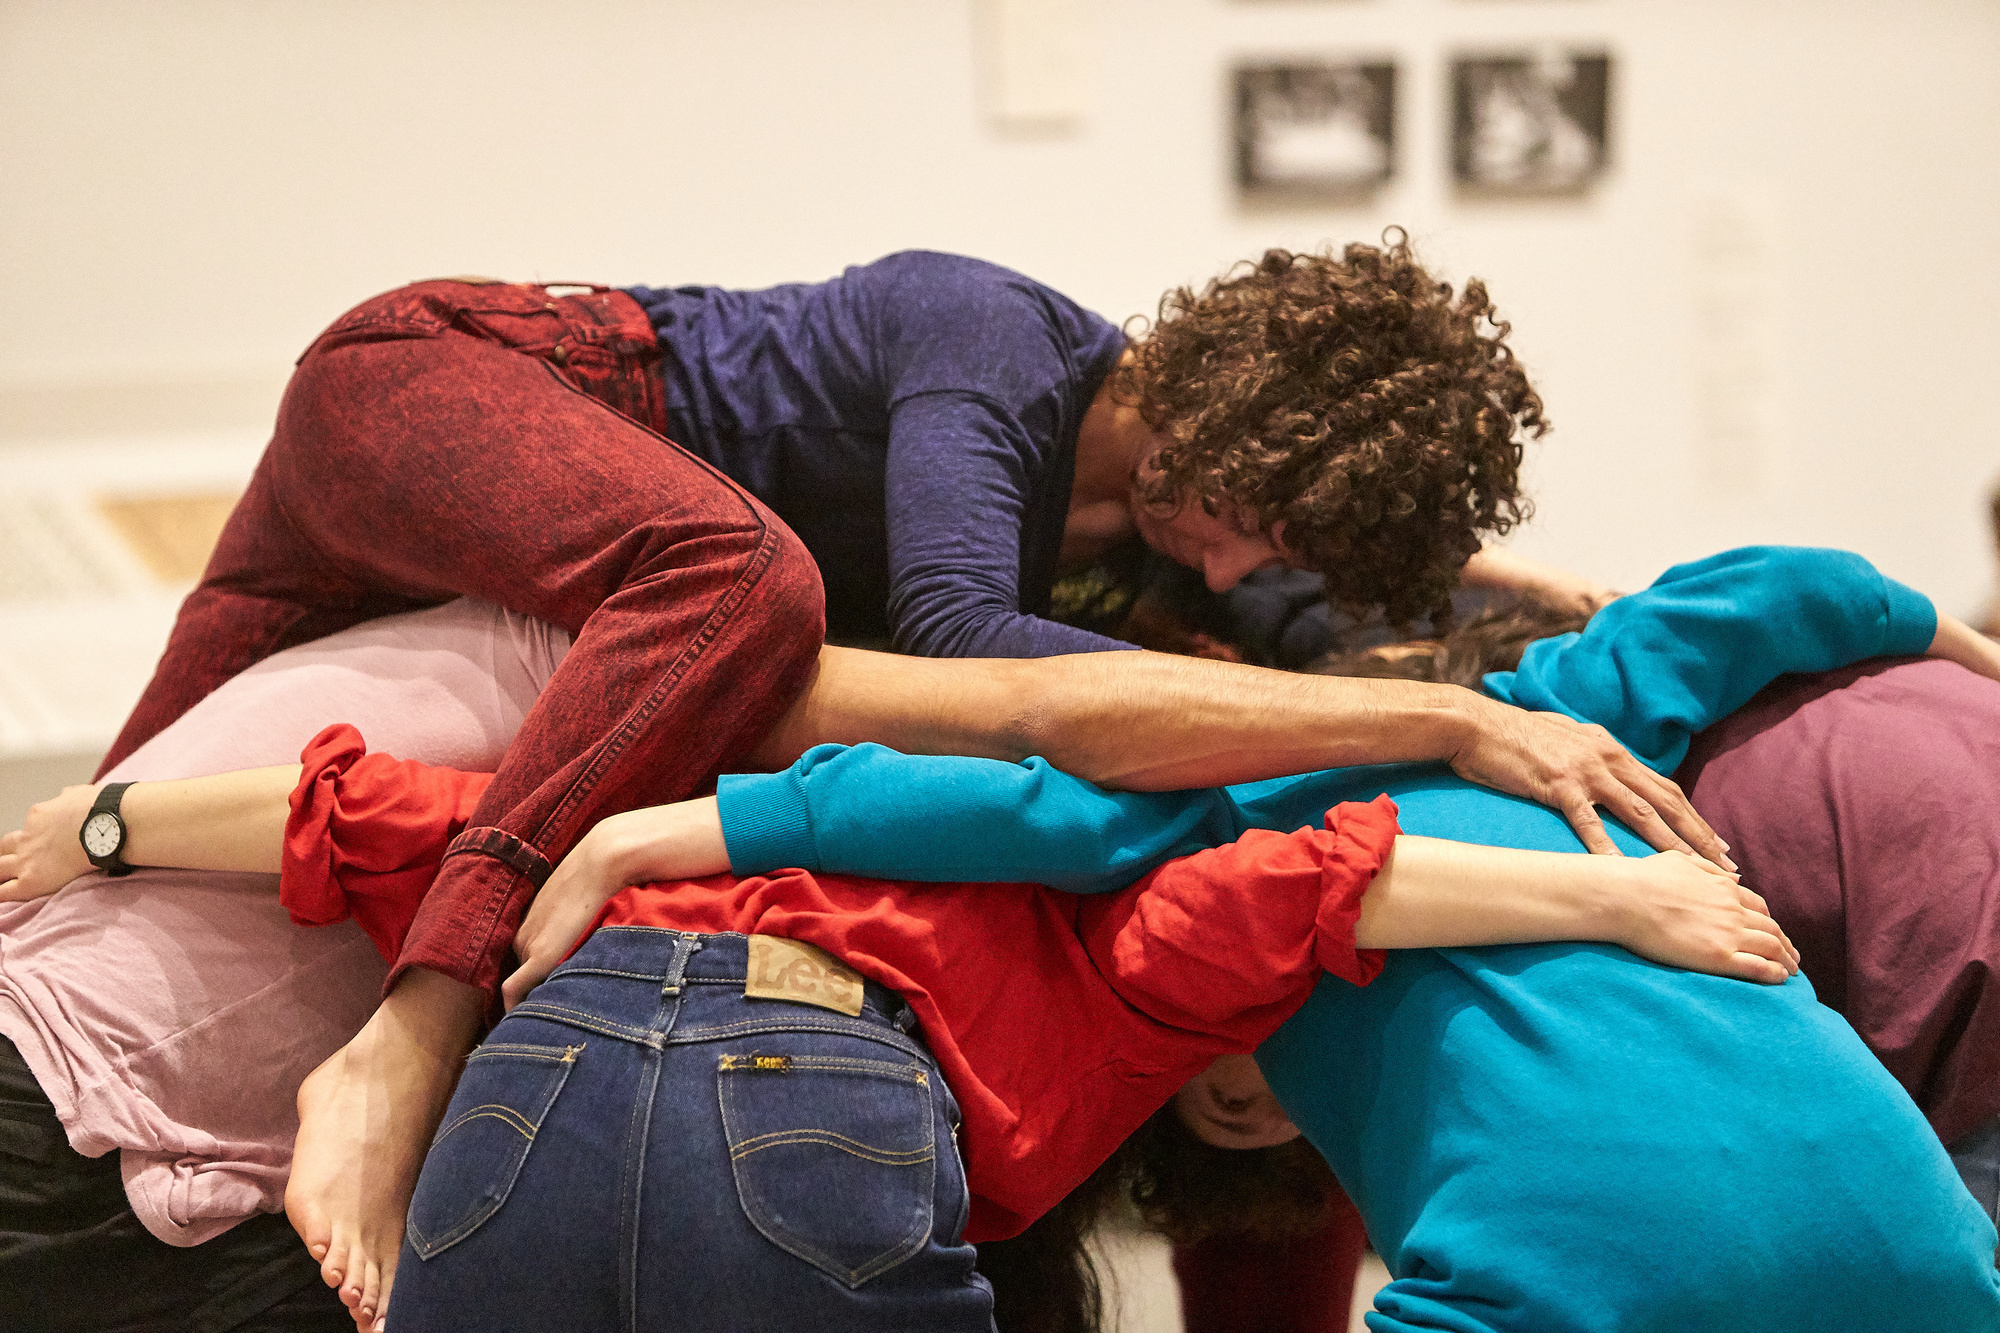 Huddle, from Simone Forti's Dance Constructions. Photo: Jason Riker